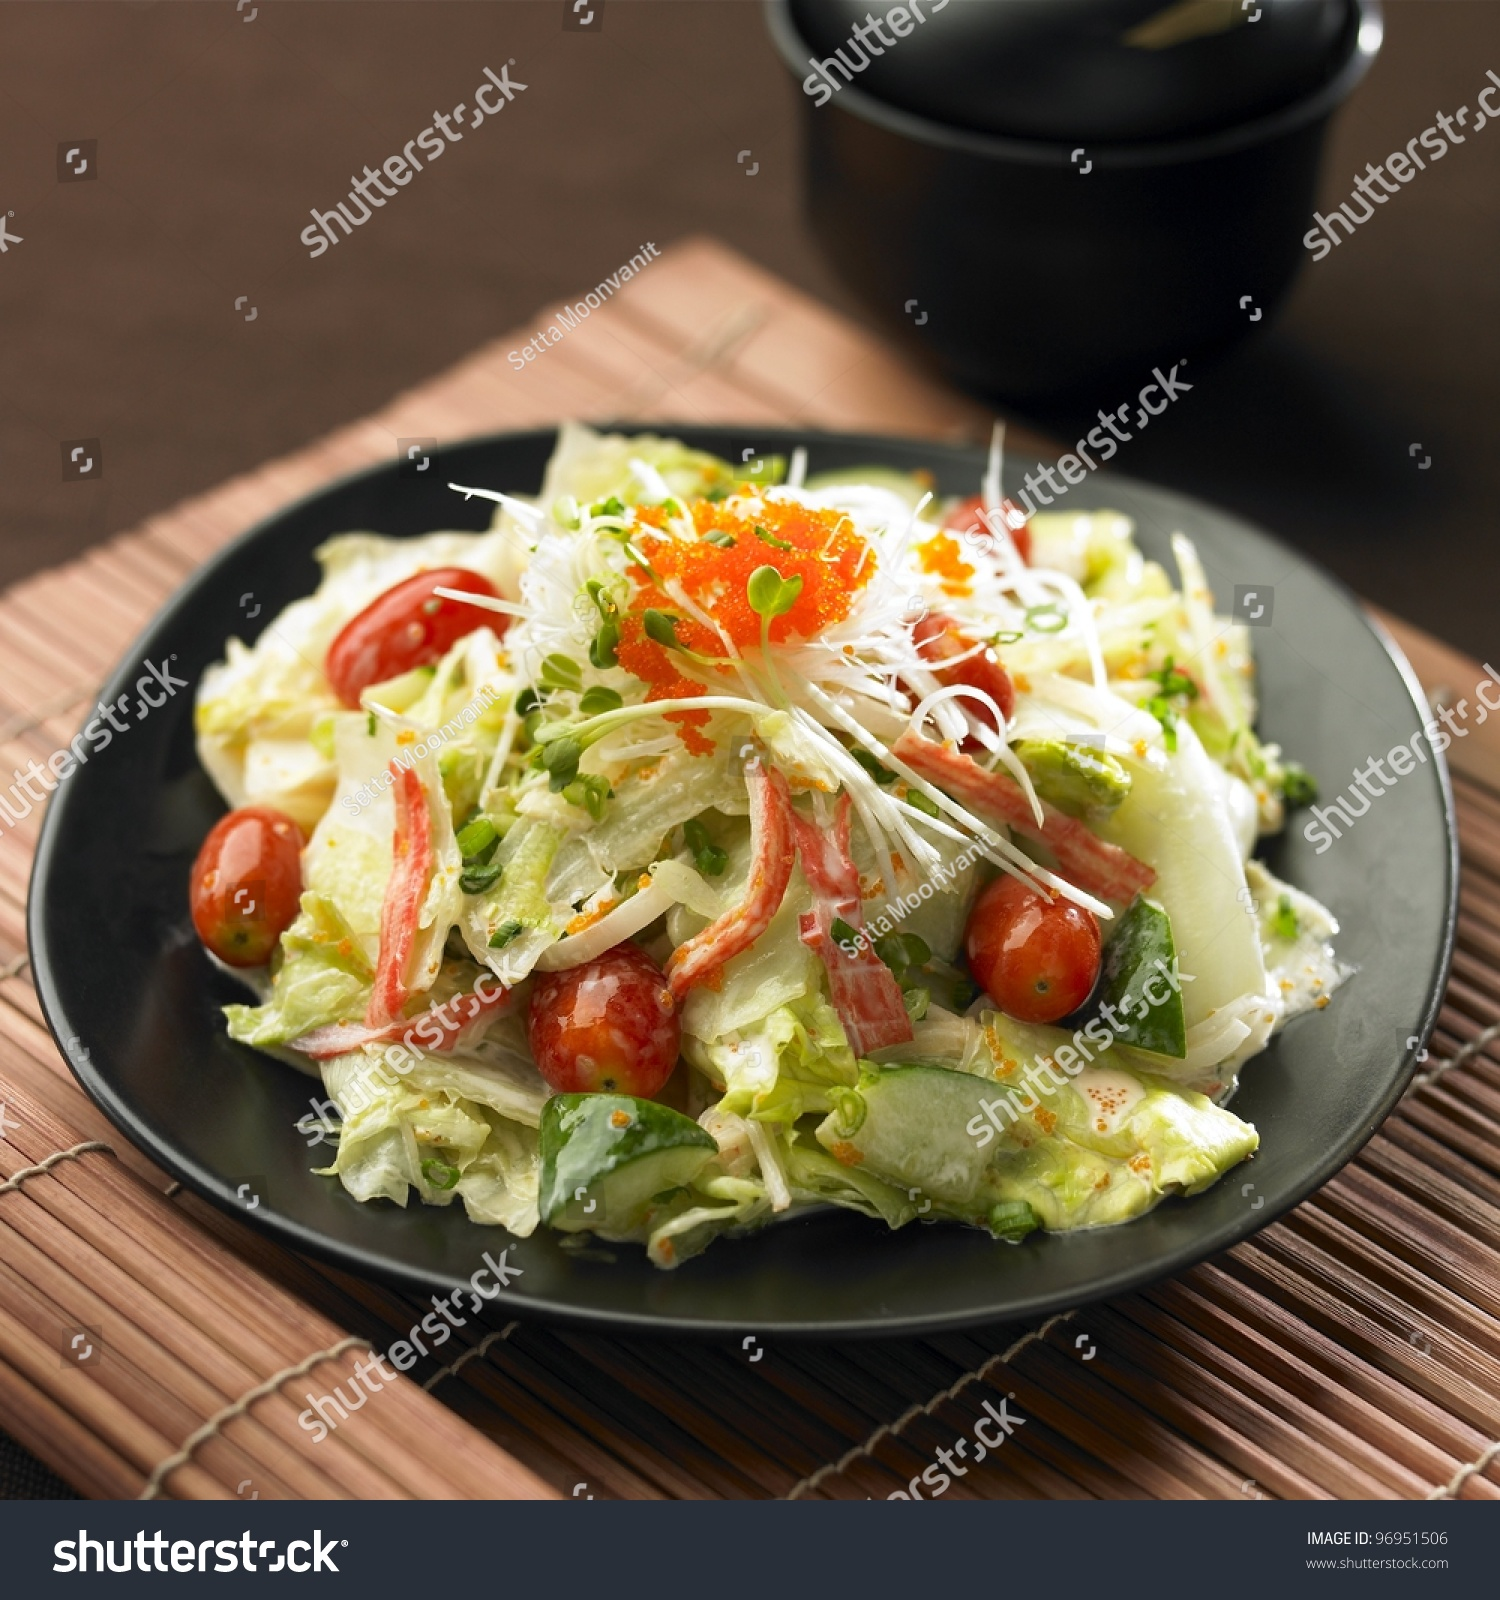 how to say salad in japanese